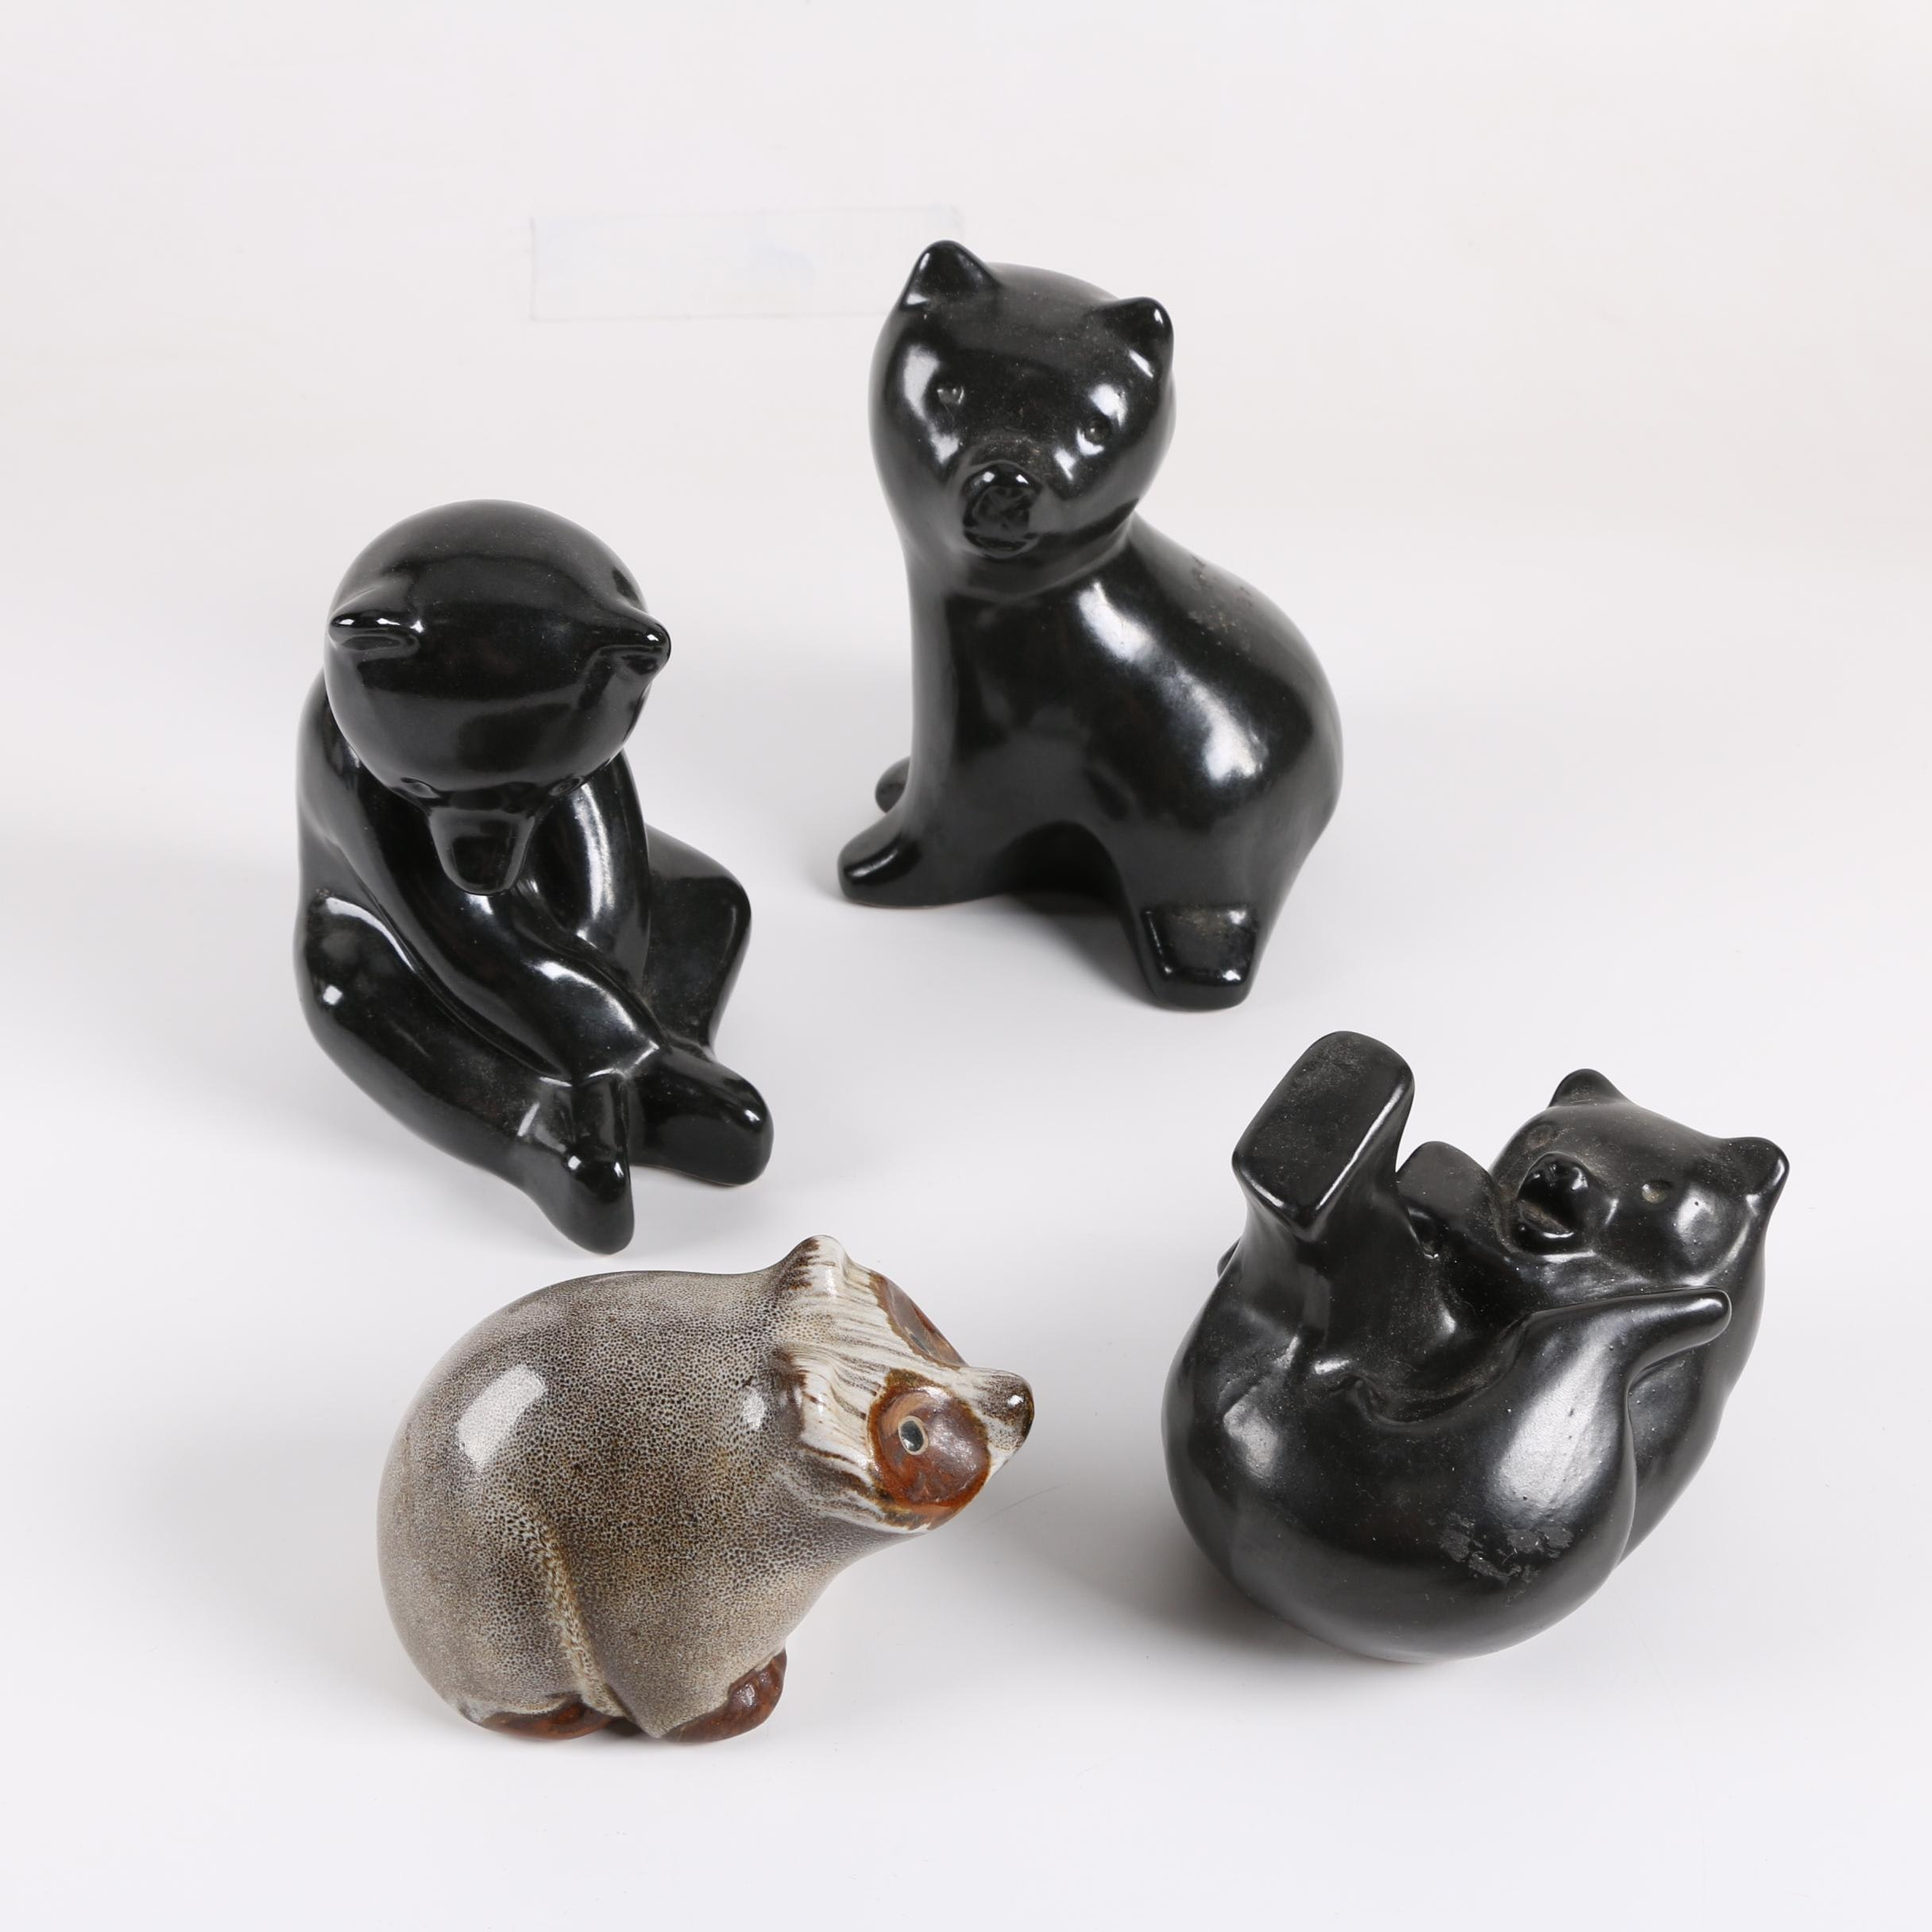 Pigeon Forge Pottery Signed Animal Figurines